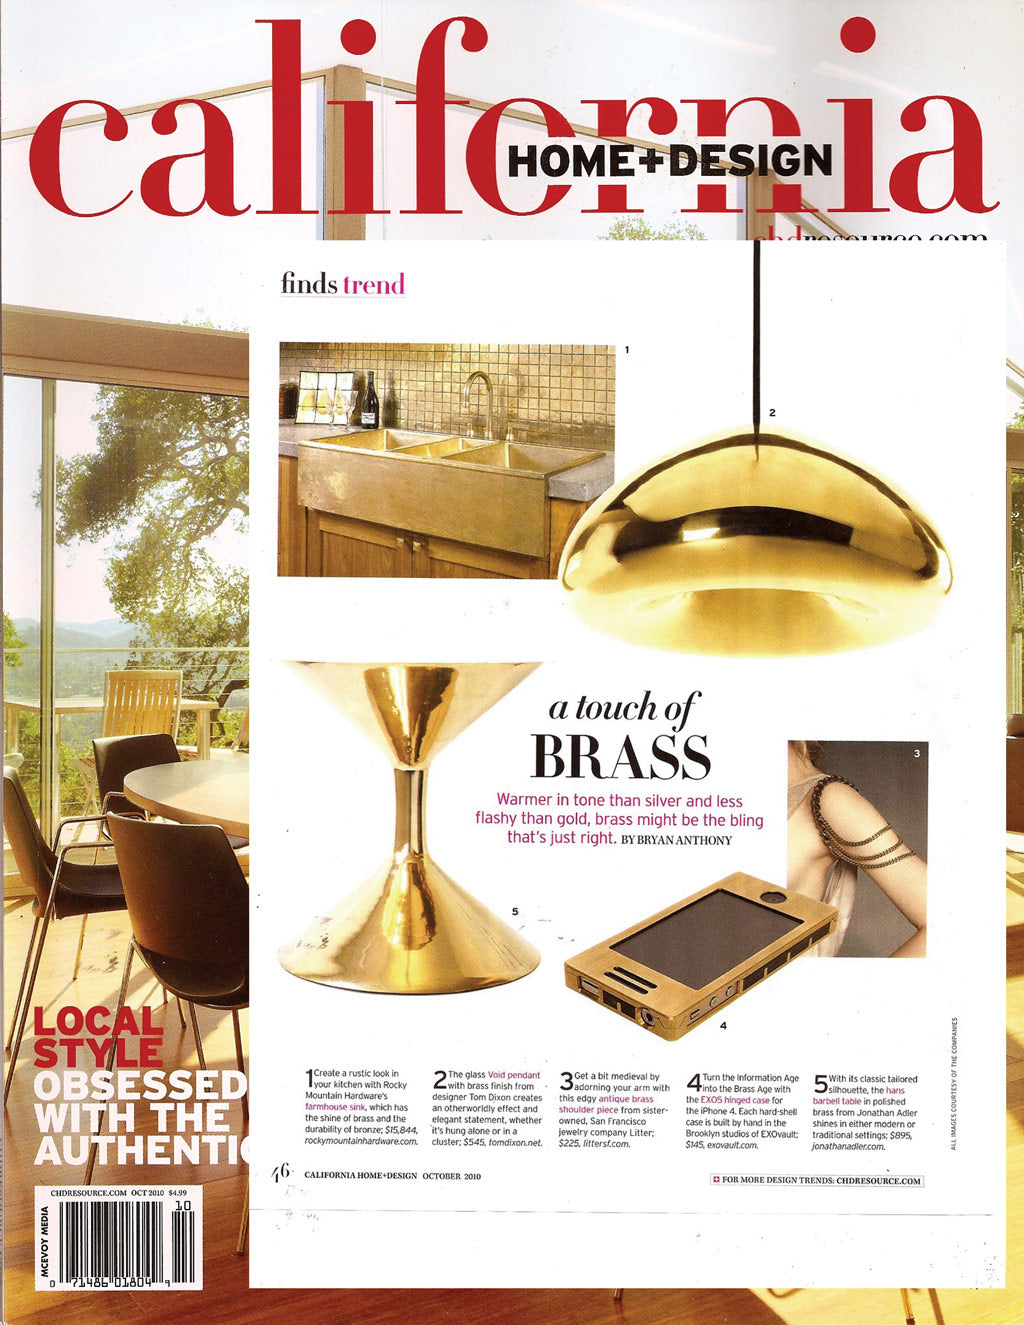 California Home + Design Magazine excerpt